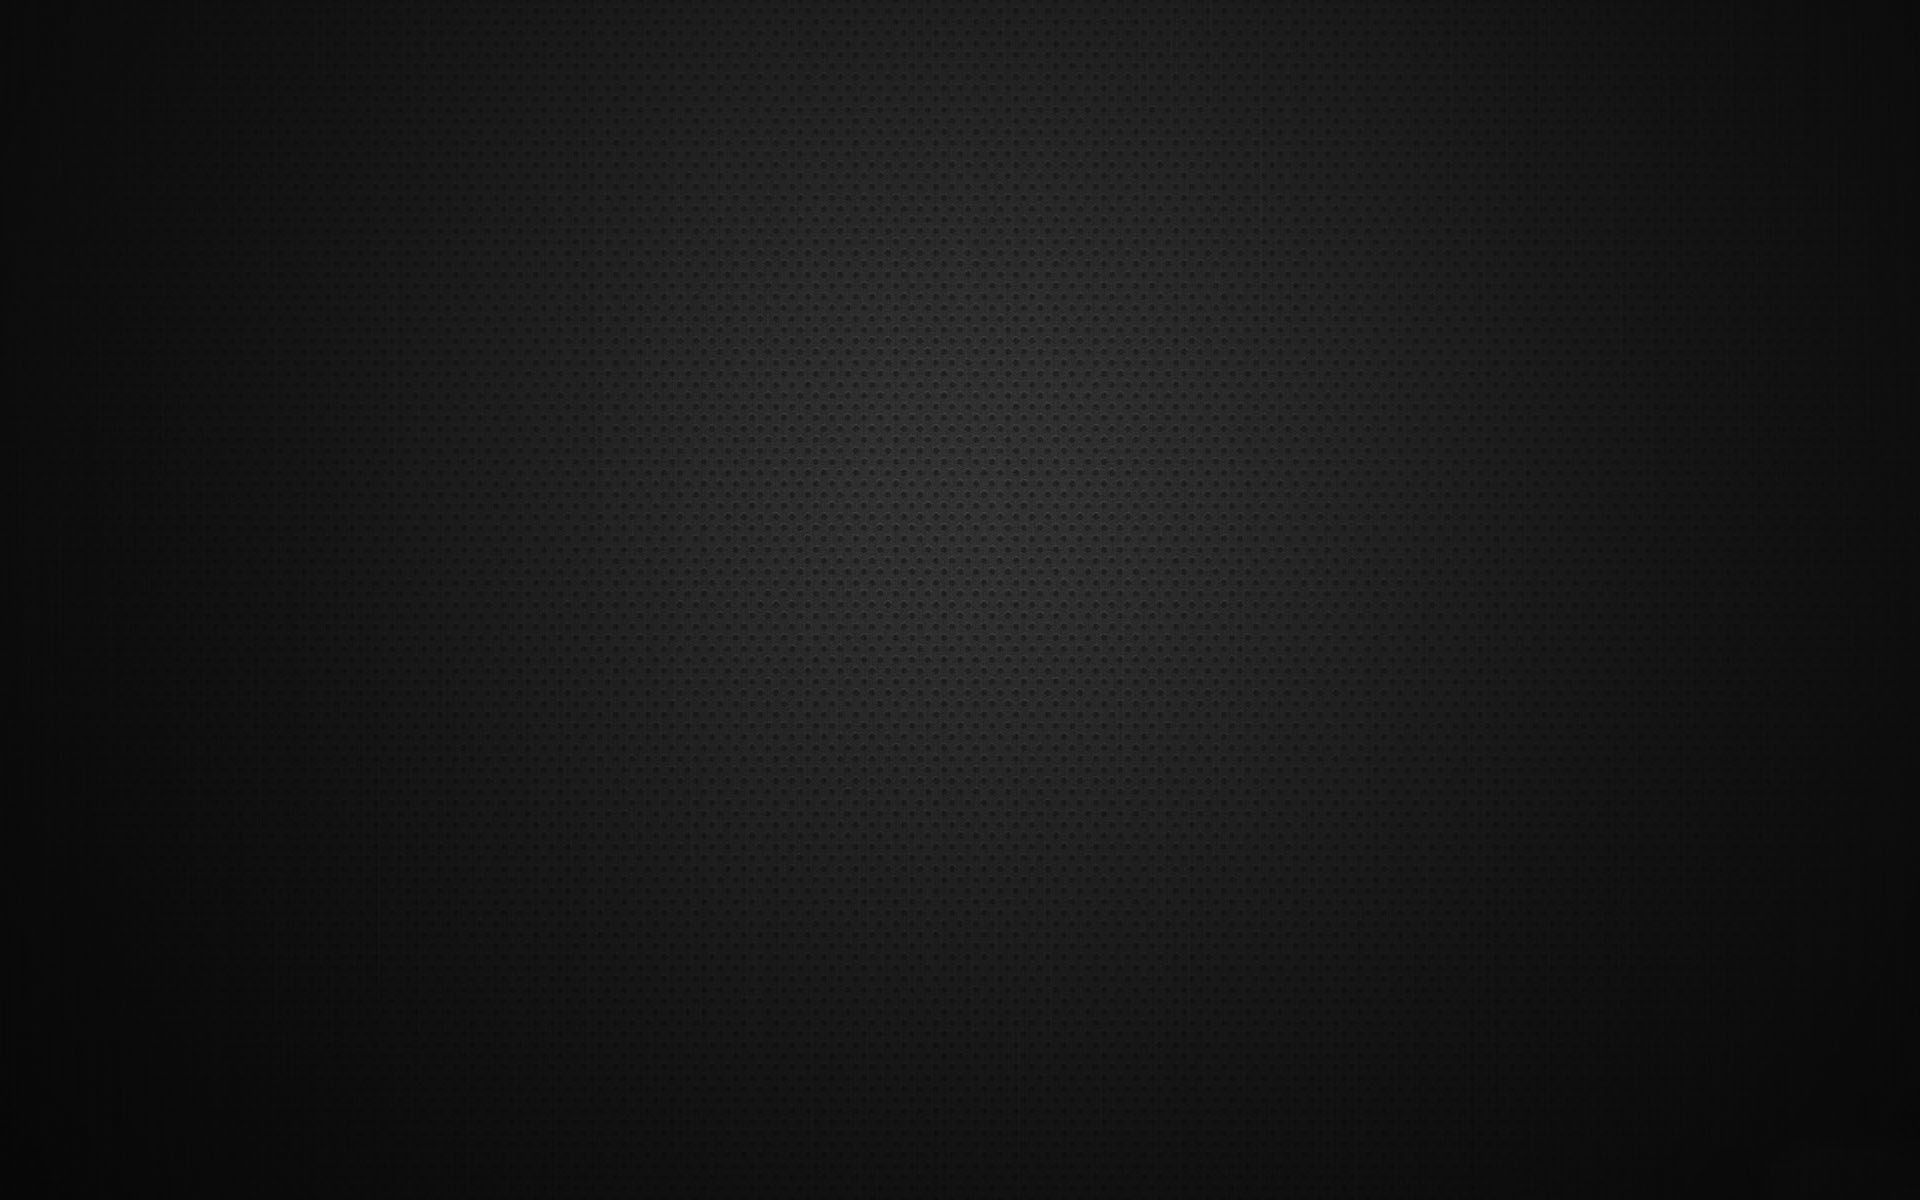 Free Black Backgrounds